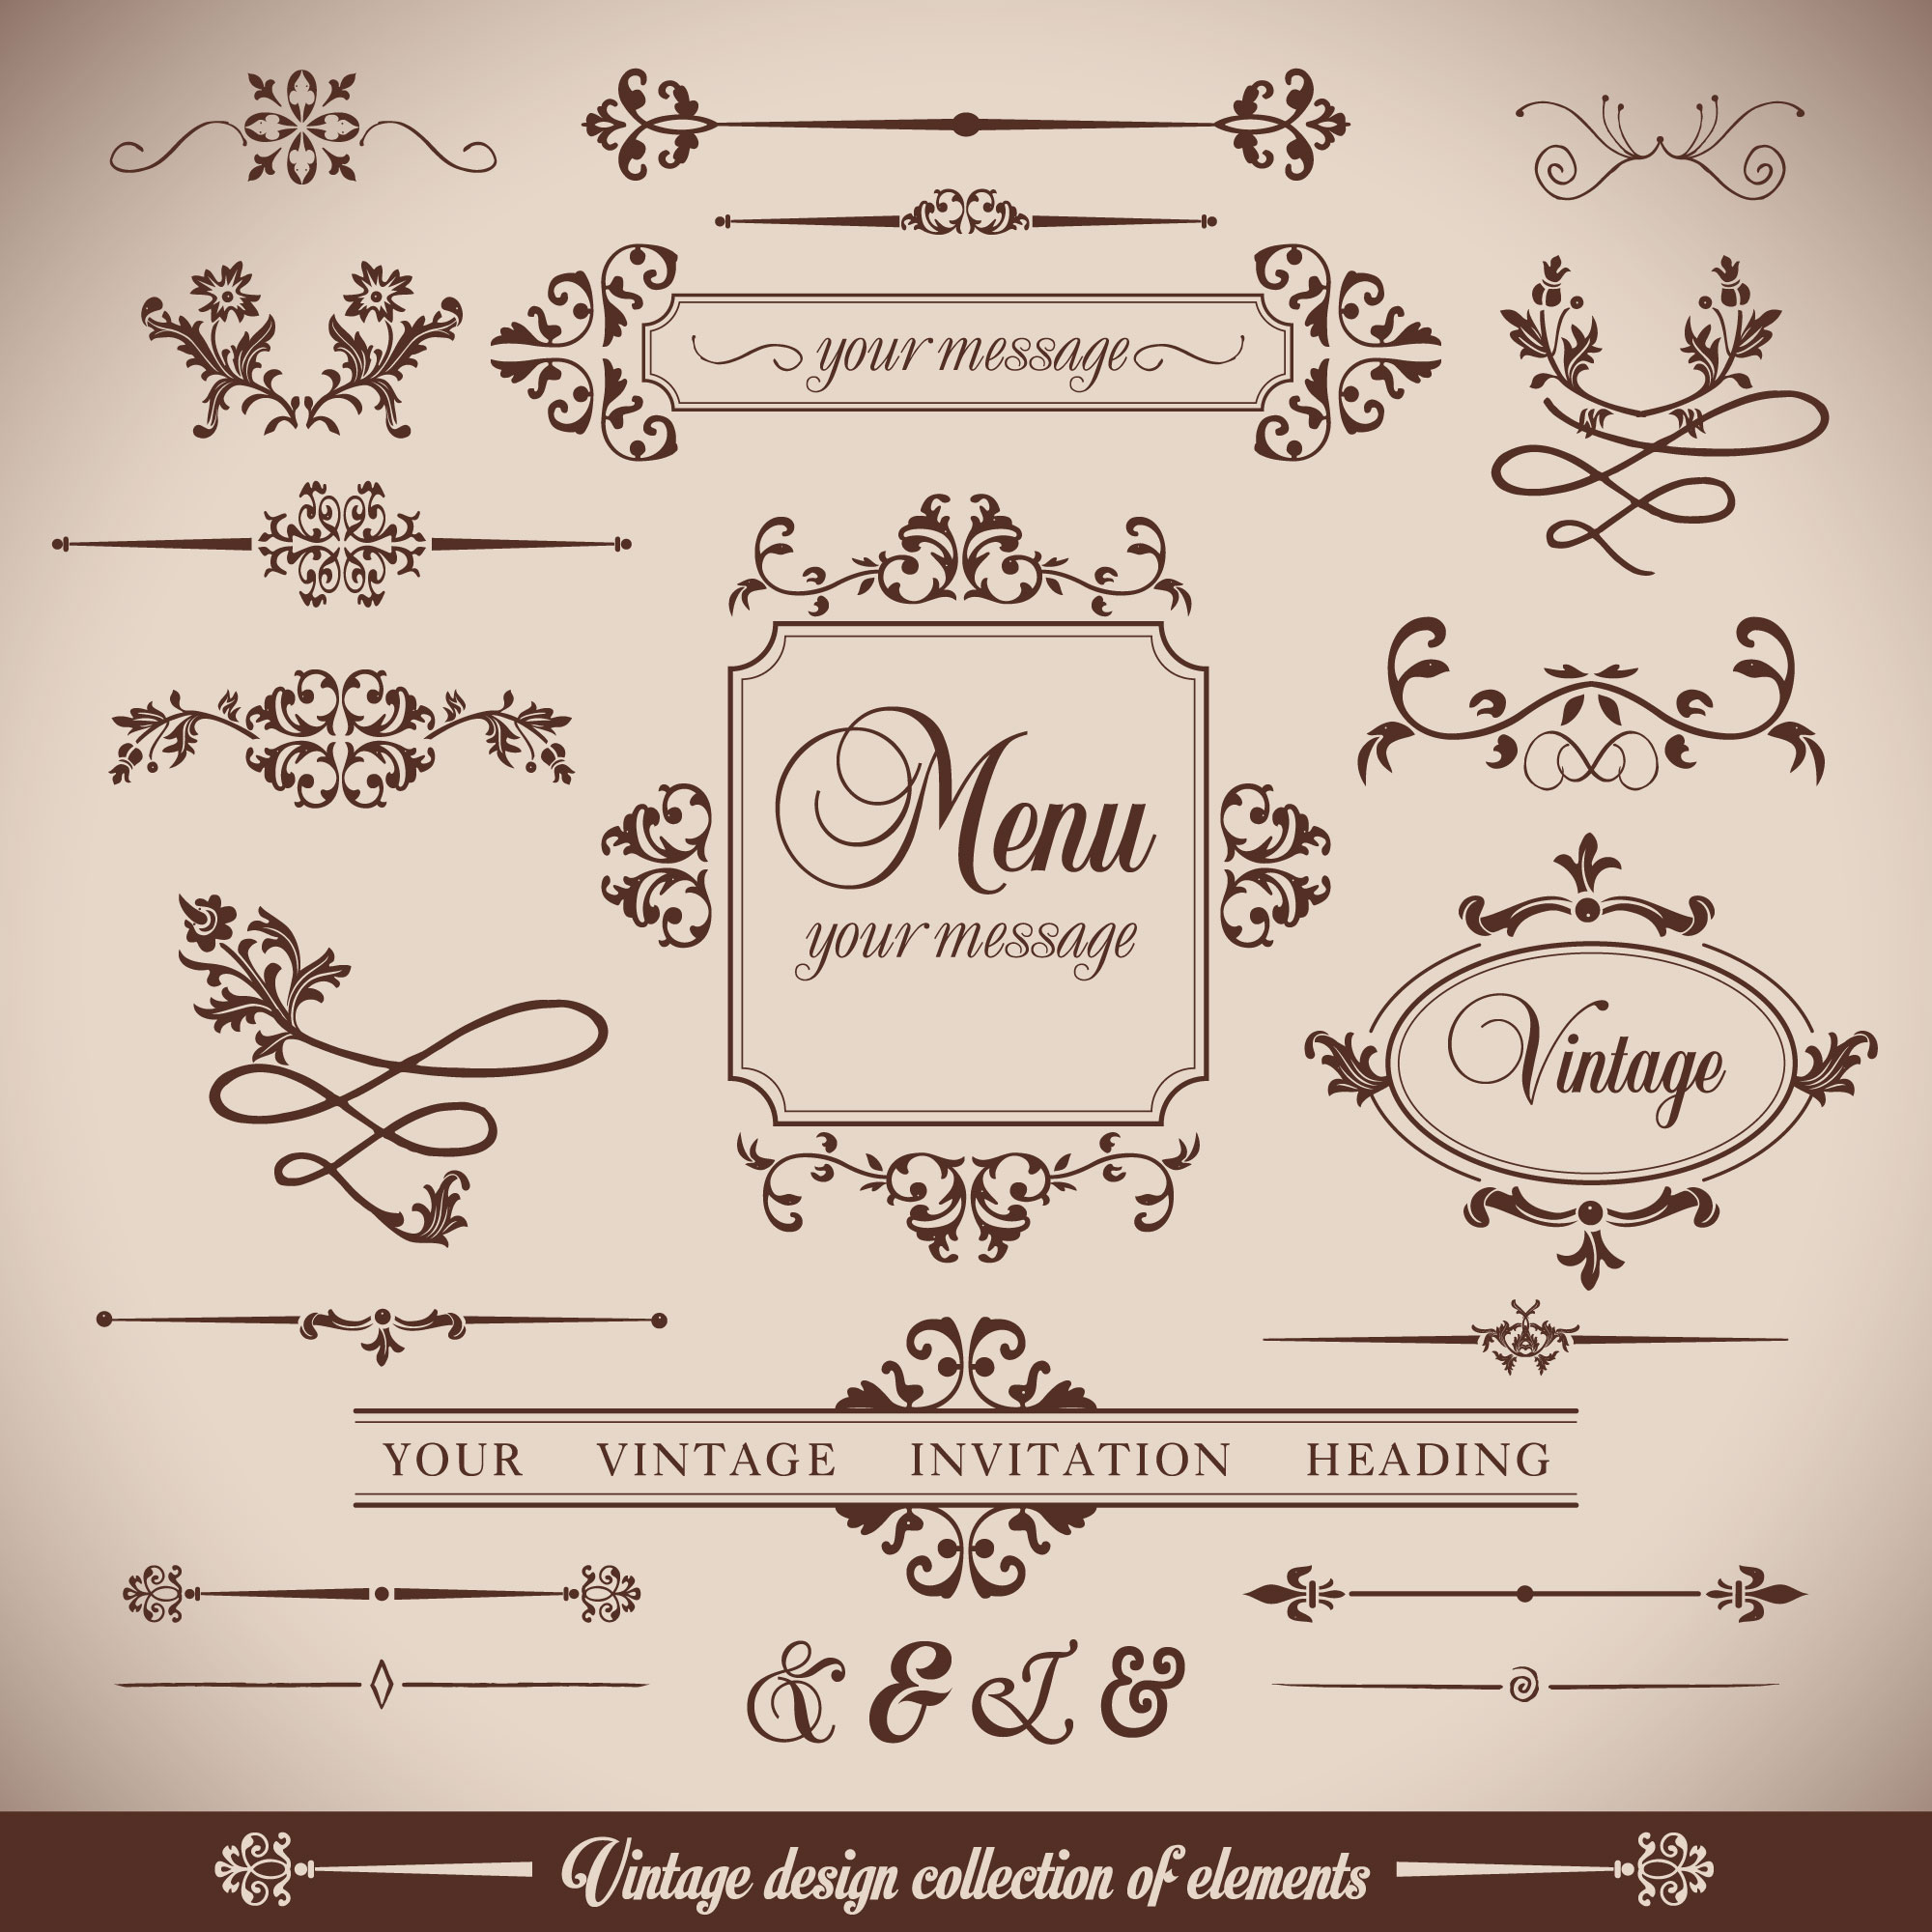 arabesque vectors  photos and psd files free download vector ornaments designs for free vector ornaments designs laser